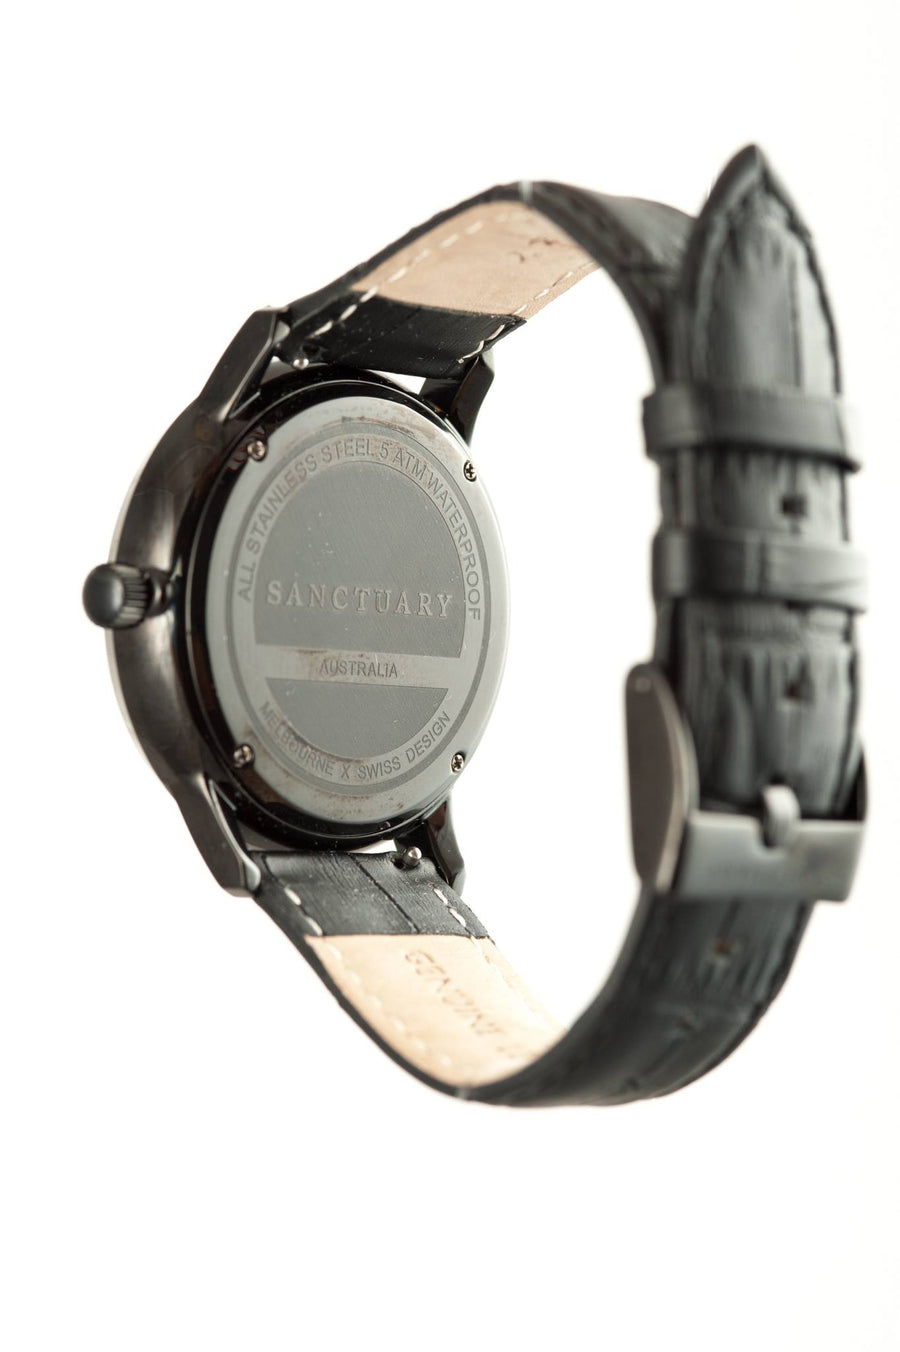 Matterhorn Black Marble / Black on Black Marble Watch